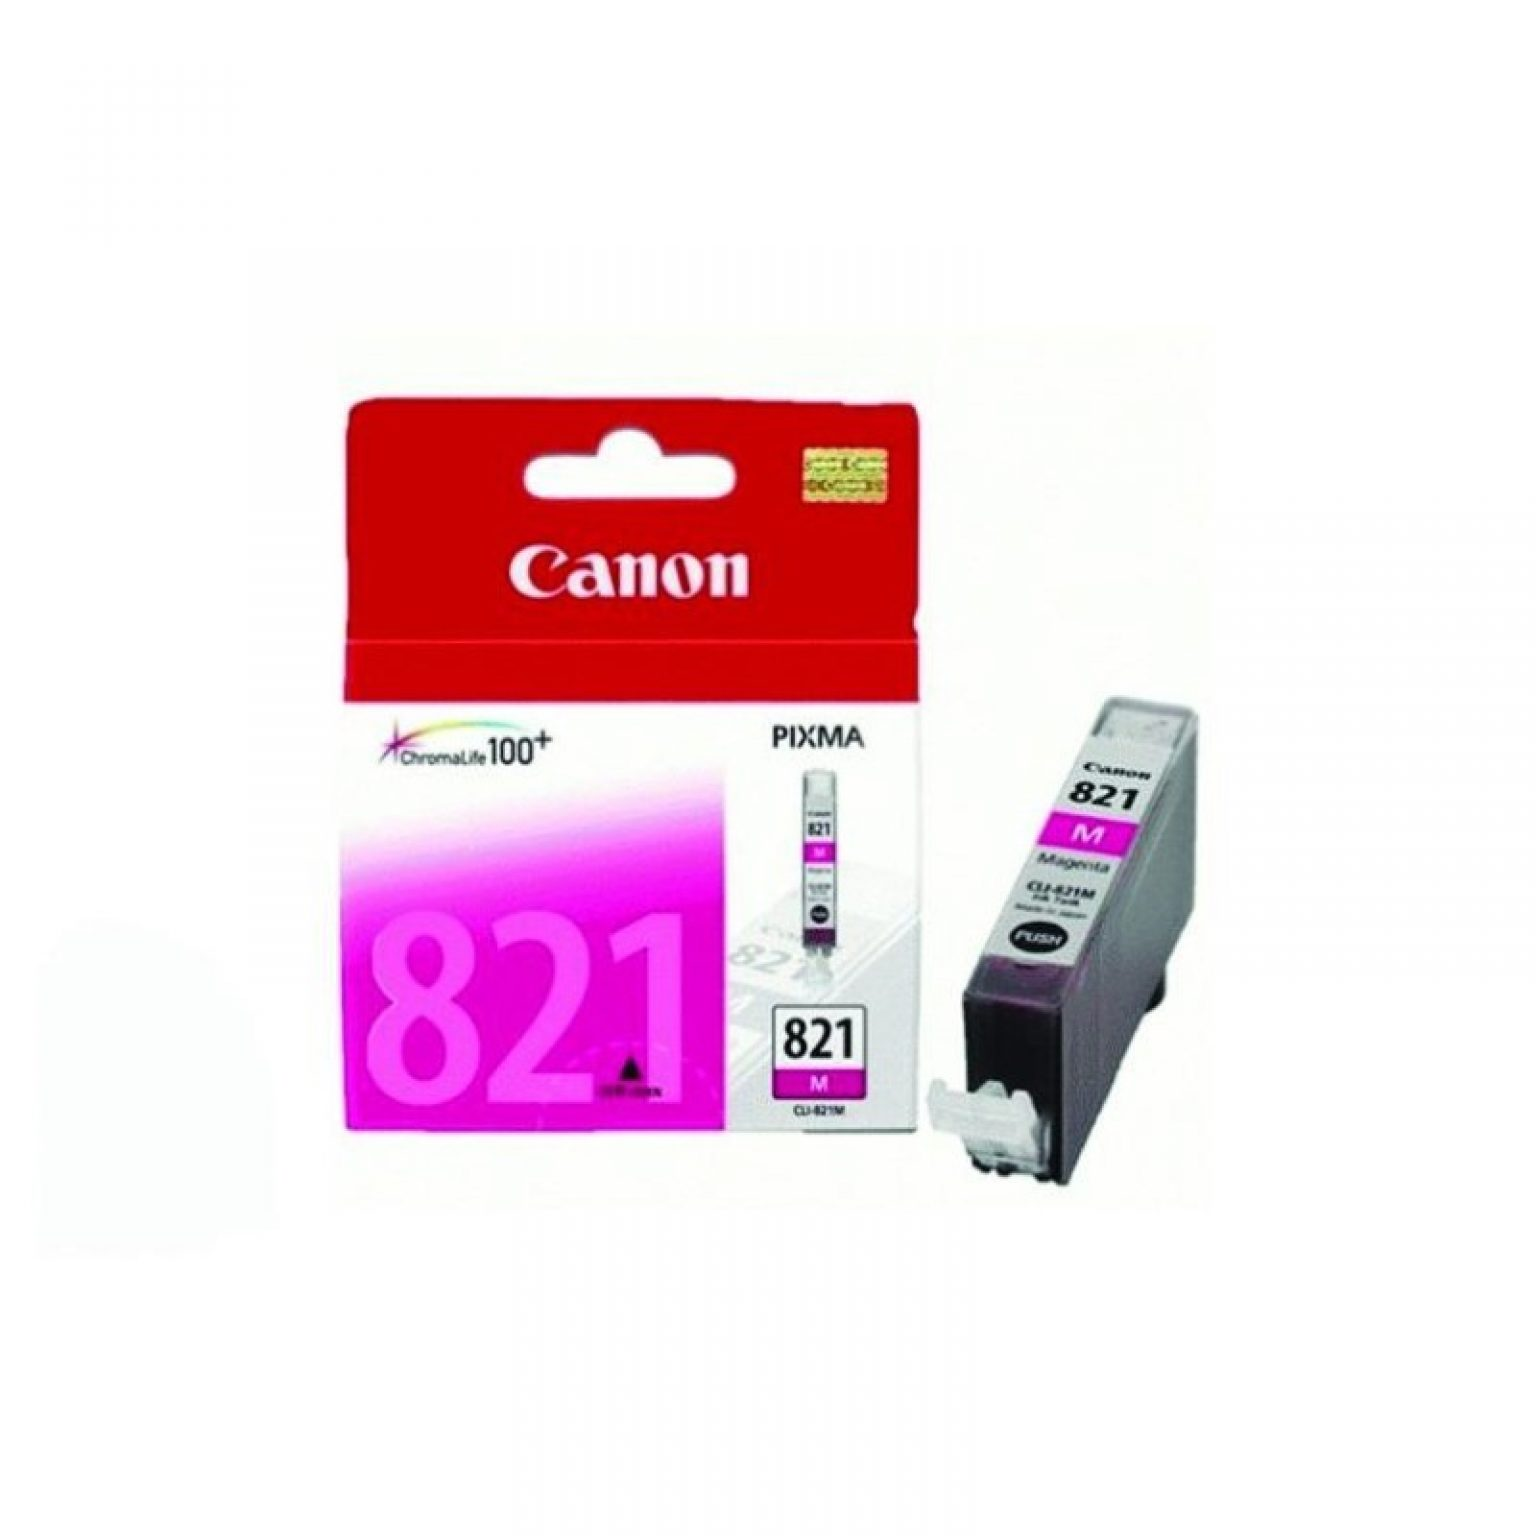 CANON - Ink Cartridge CLI-821 Magenta [CLI821M]